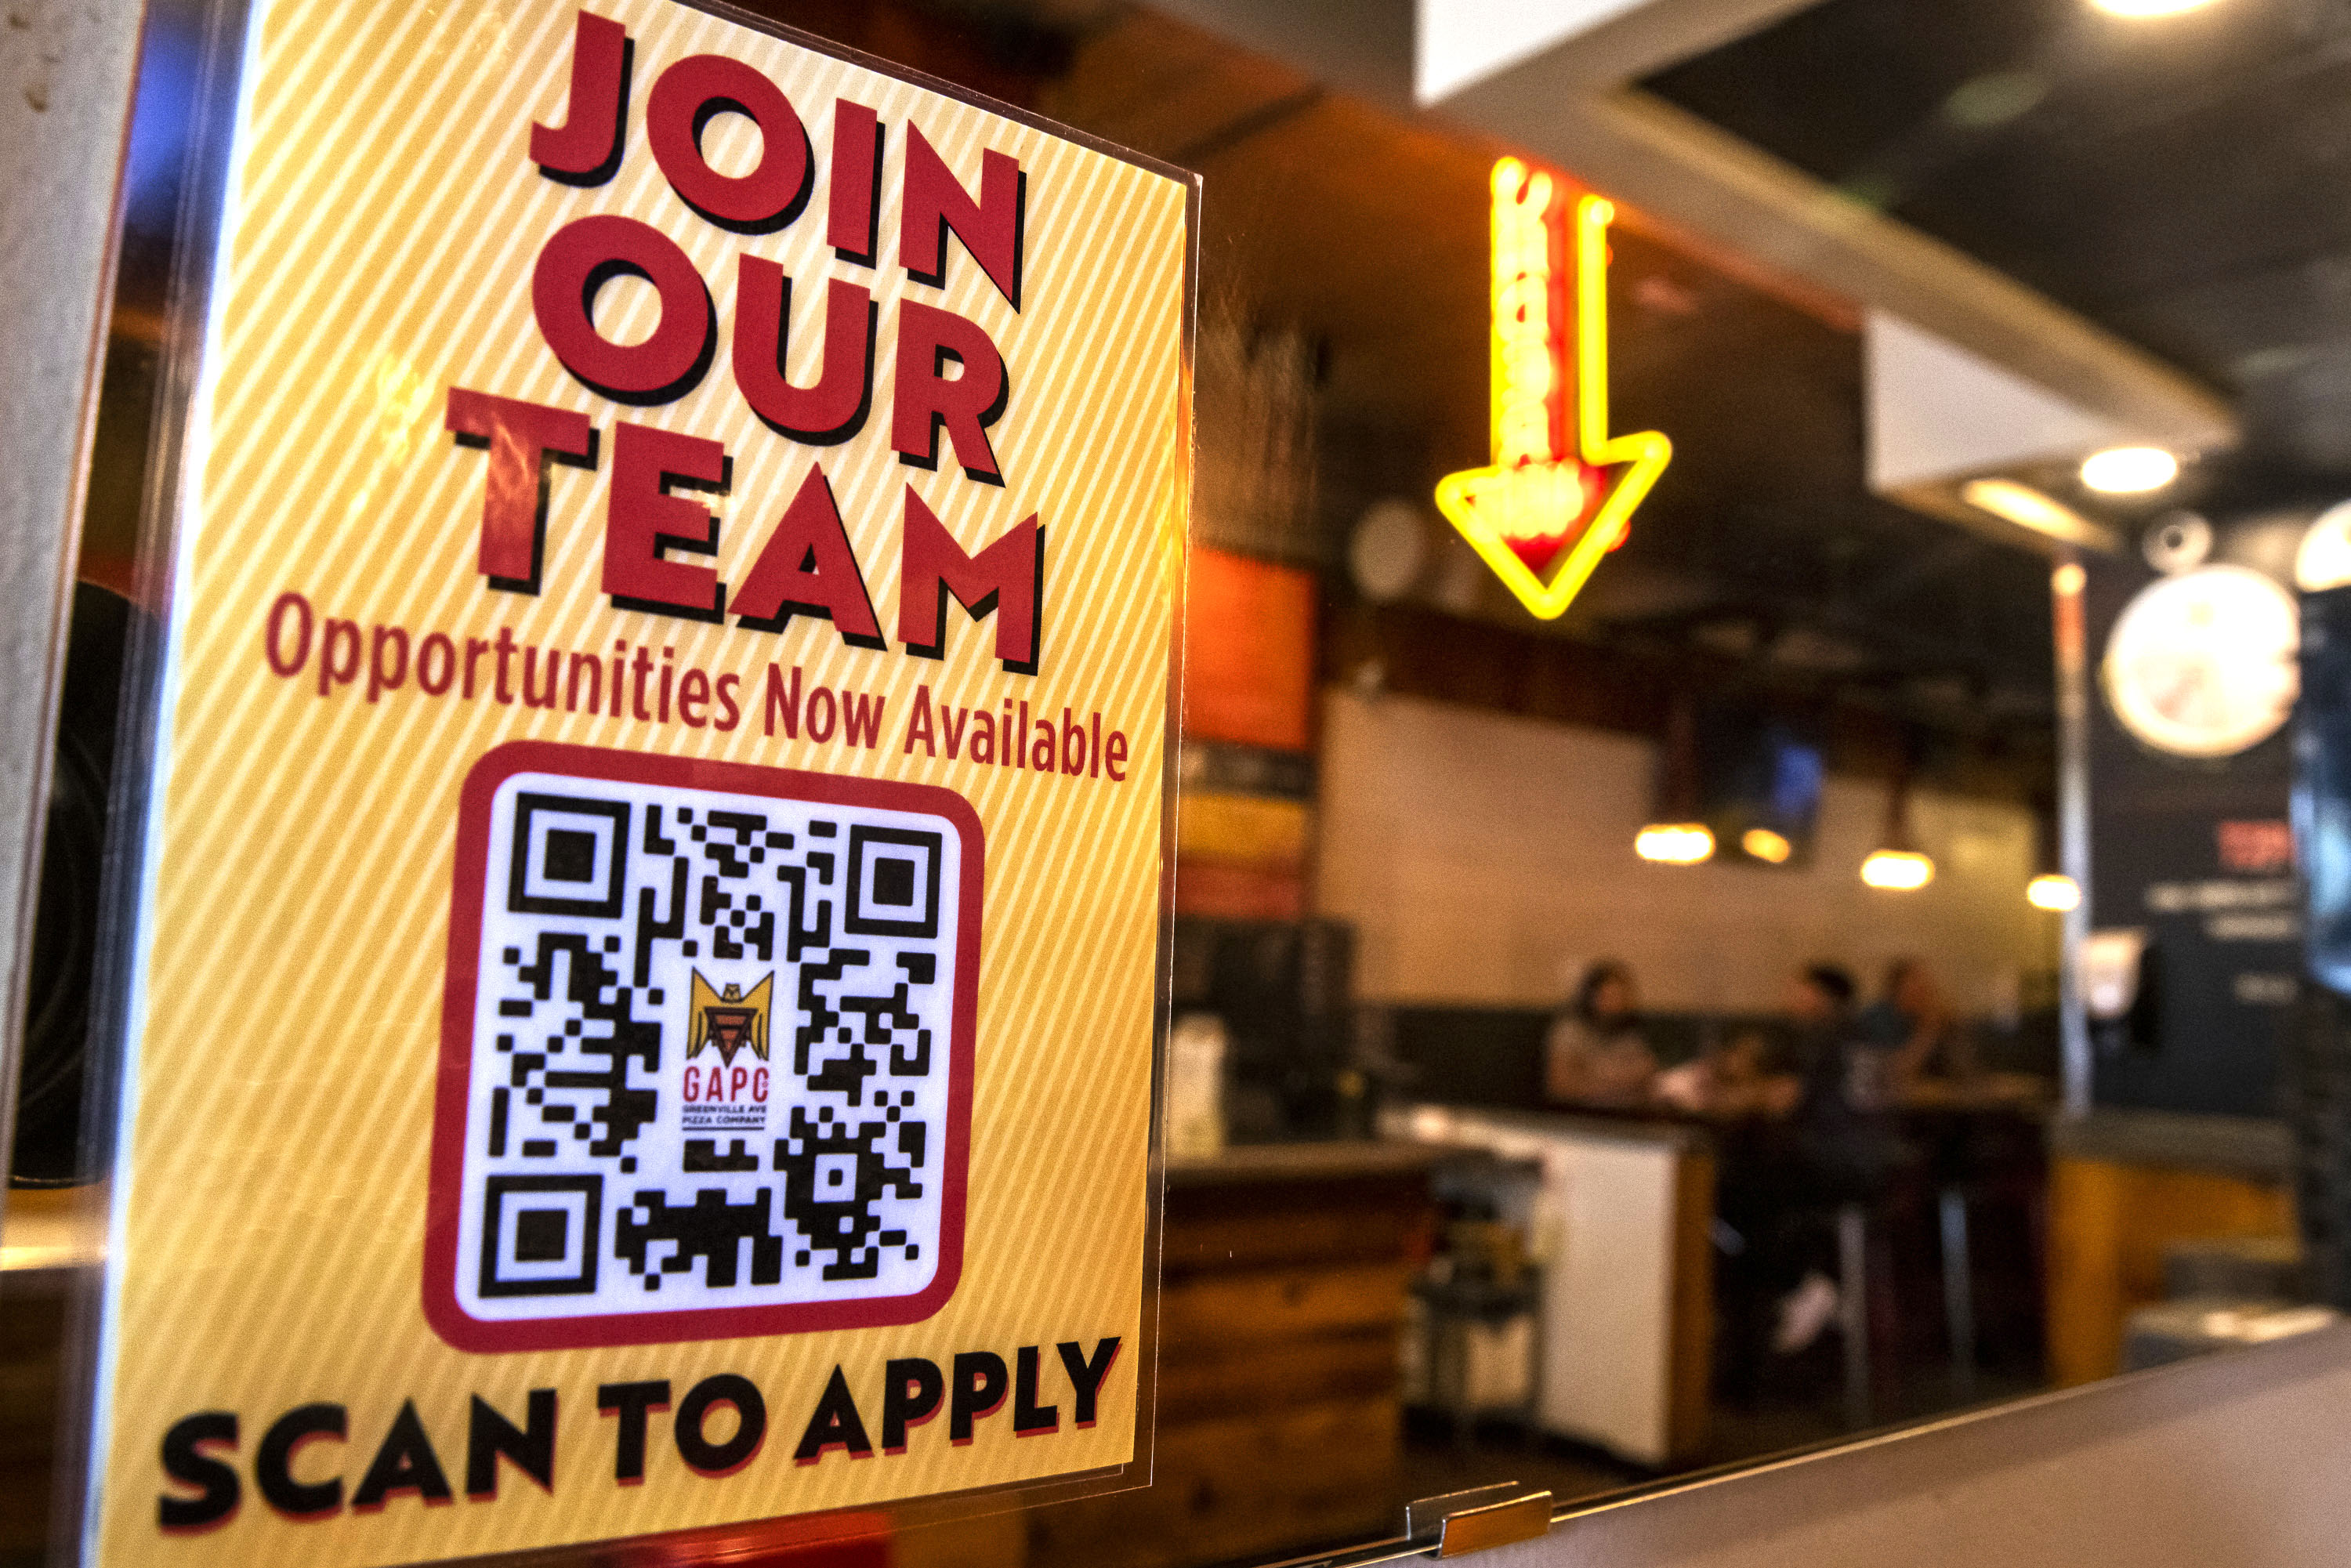 A sign advertises employment opportunities at Greenville Avenue Pizza Company in Dallas on Tuesday, June 8, 2021. Some companies have taken to offering incentives to attract new employees. Greenville Avenue Pizza Company offers $200 to new hires after six weeks of service.